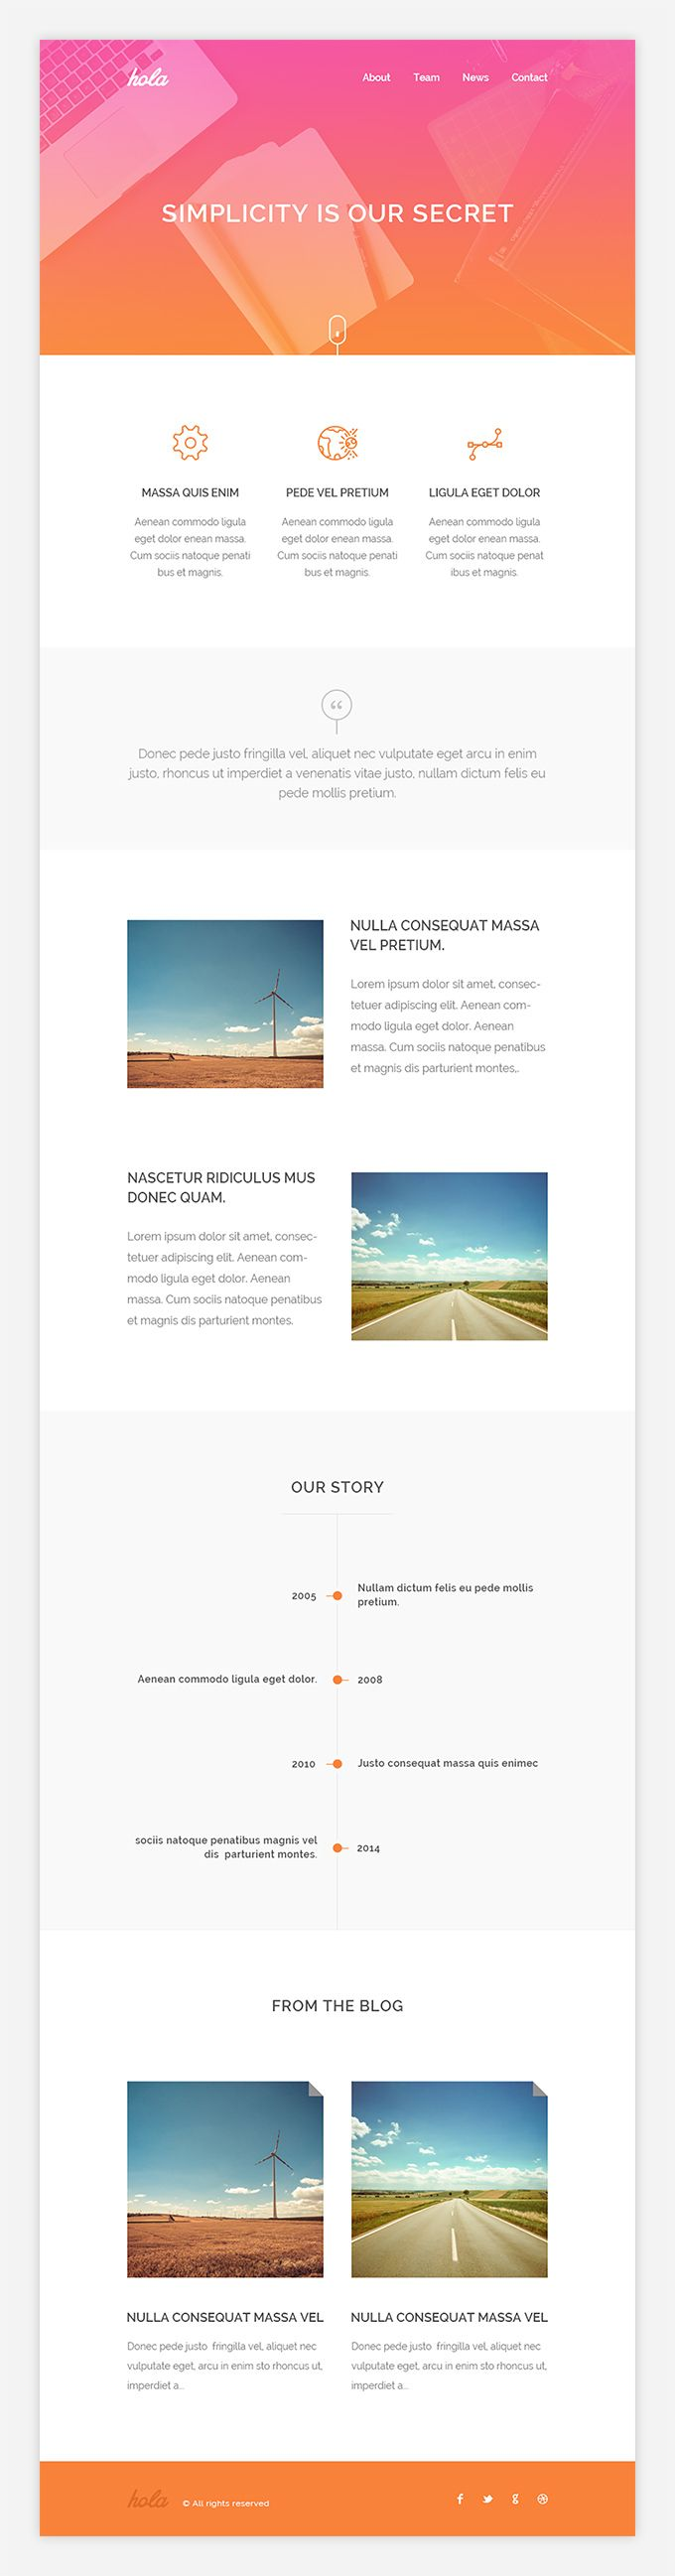 Hola is an Email HTML Template with clean and beautiful design. It's very simple and easily adaptive to your purposes.